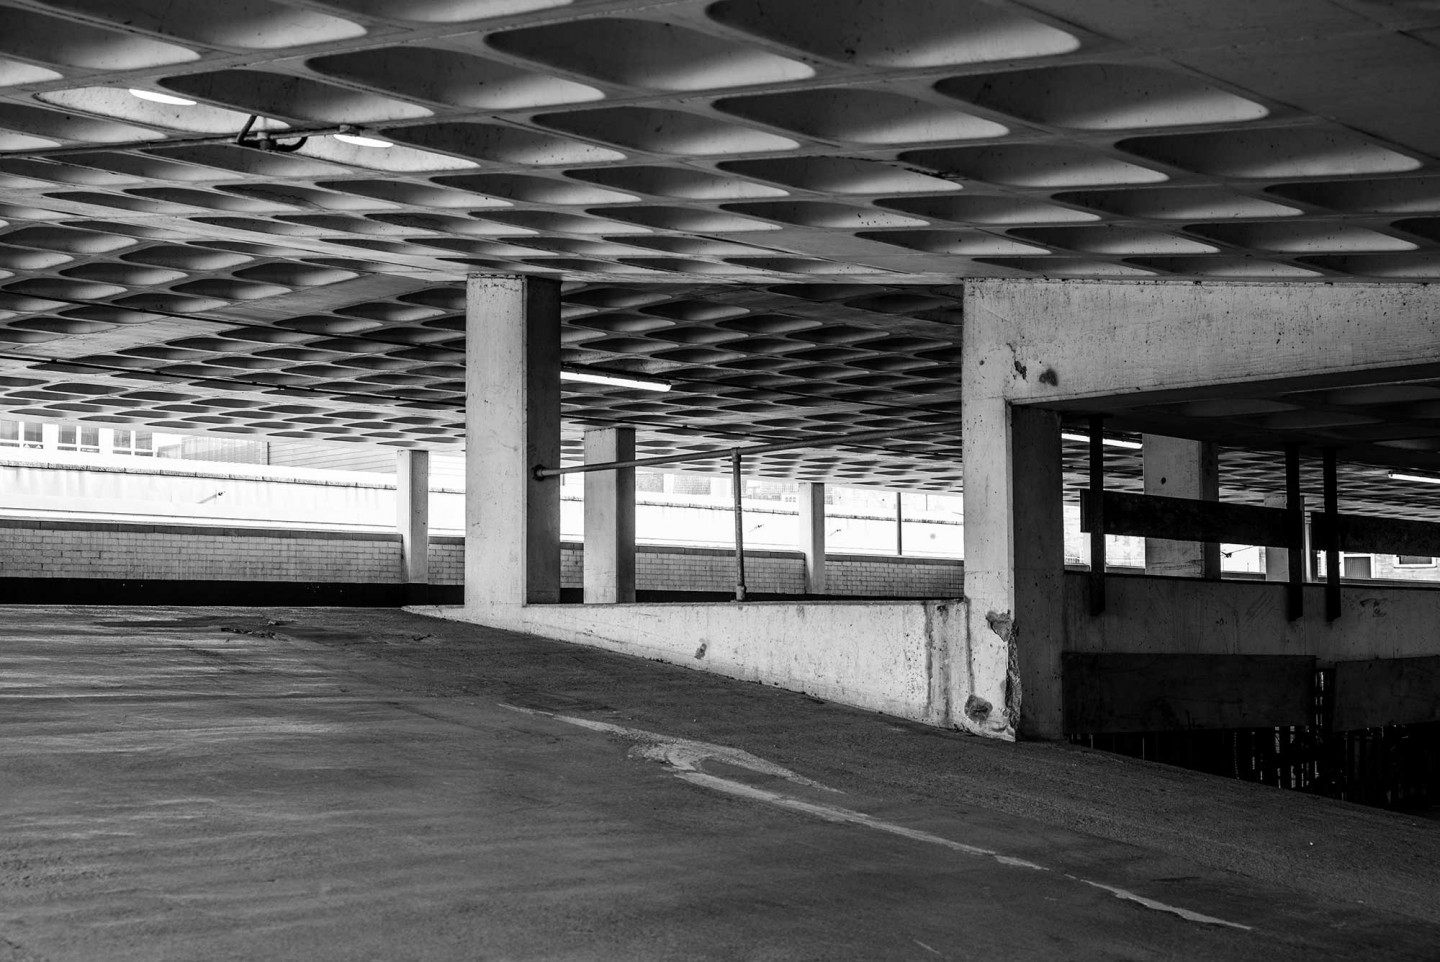 Taken in my home city of Bath. The usually very busy Avon Street multi-story car park was totally empty and deserted. © Mark Dunscombe